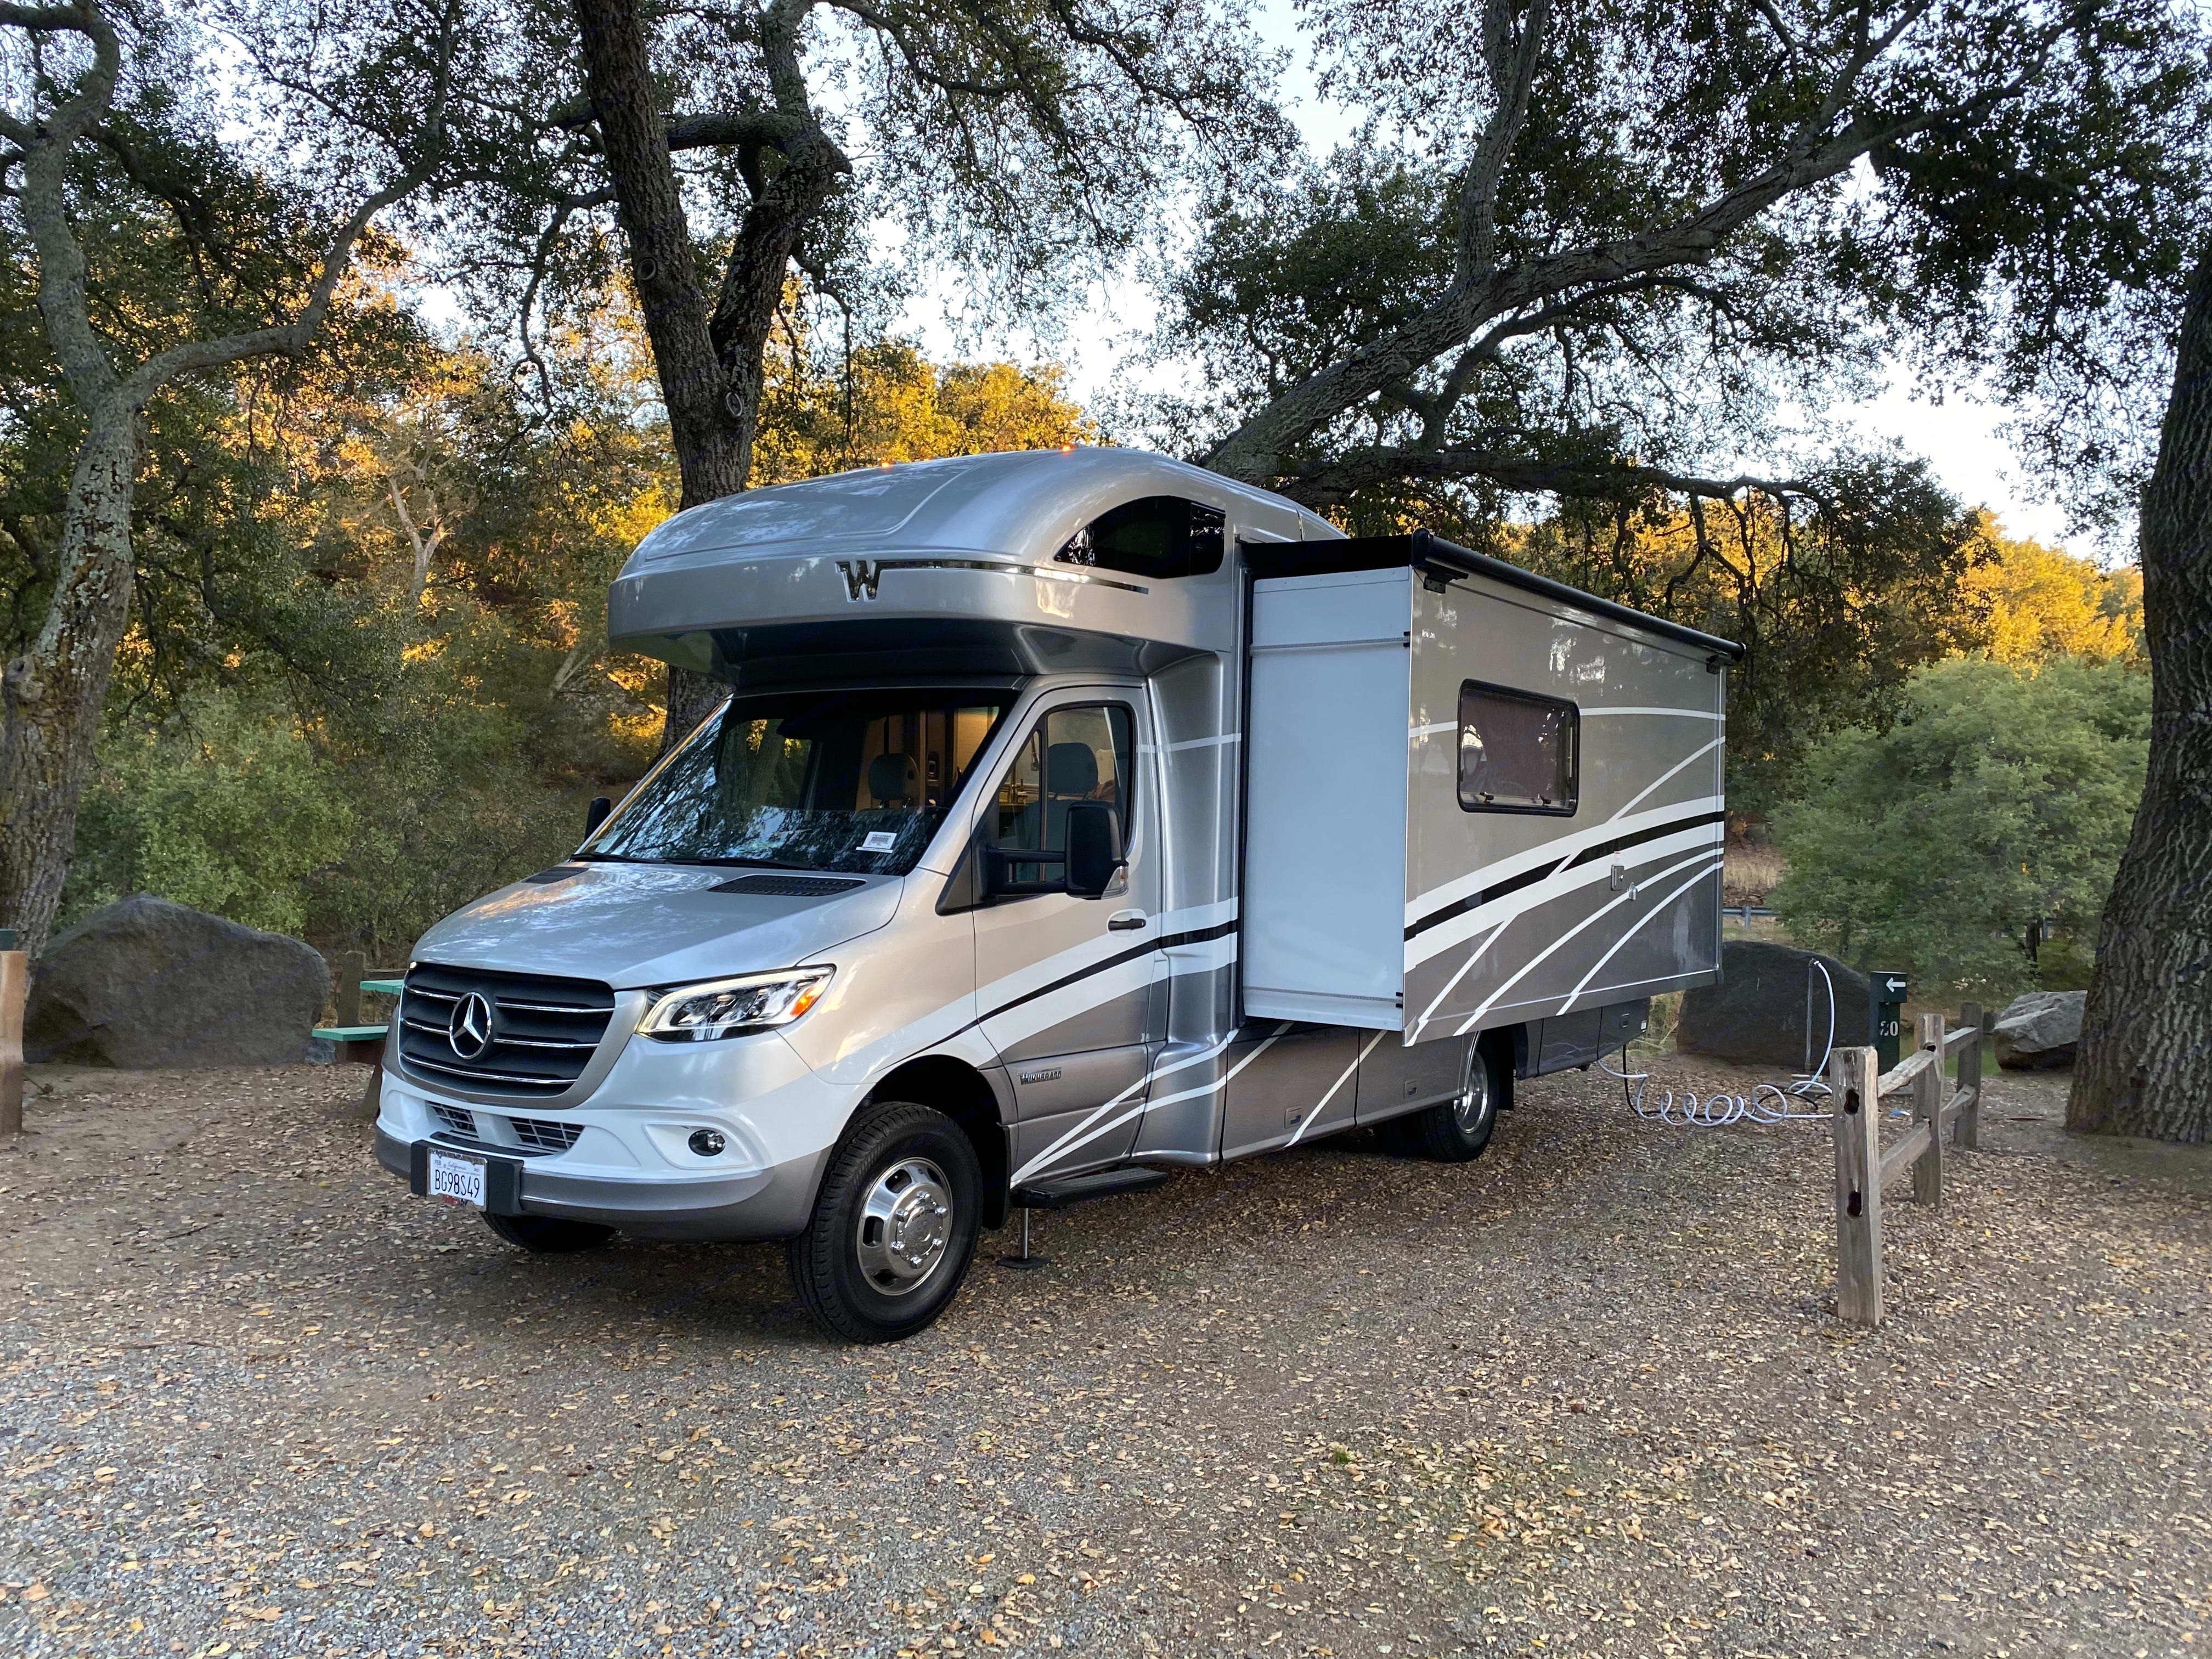 Narrow profile with slideout and high-mounted rear camera make this easy to park safely.. Winnebago Avion View 24D 2021